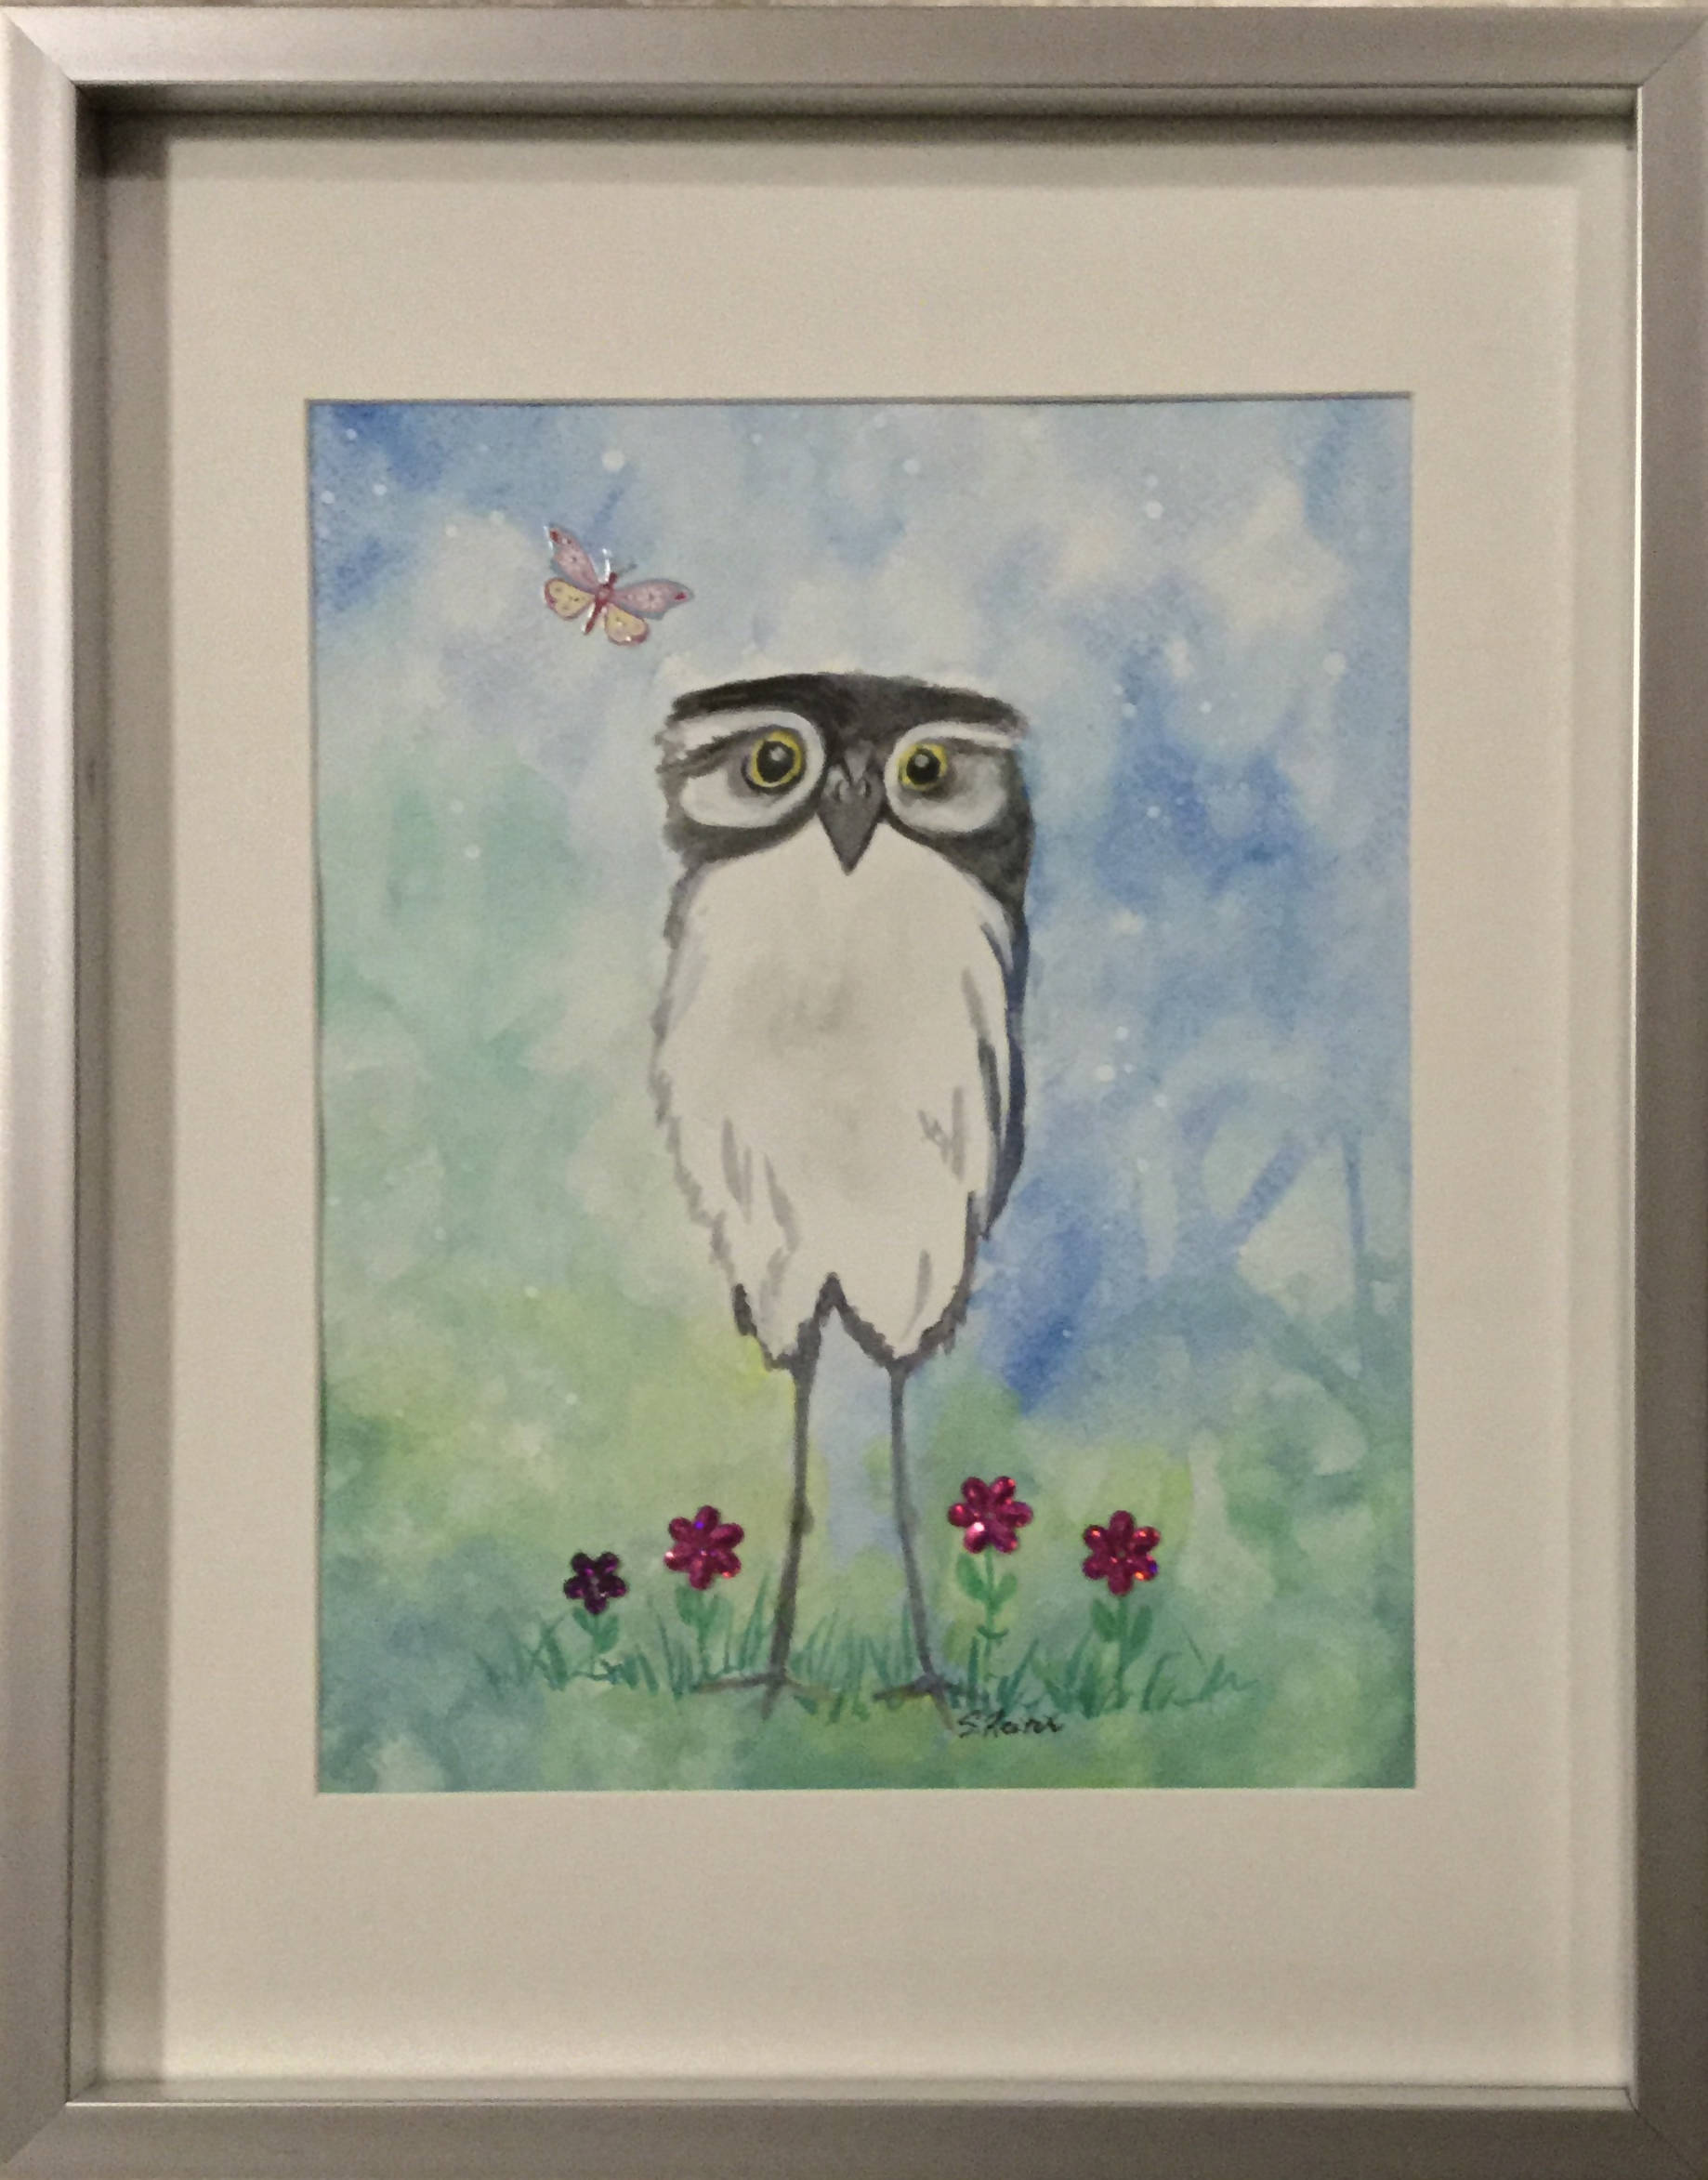 Watercolour of a Whimsical Baby Owl